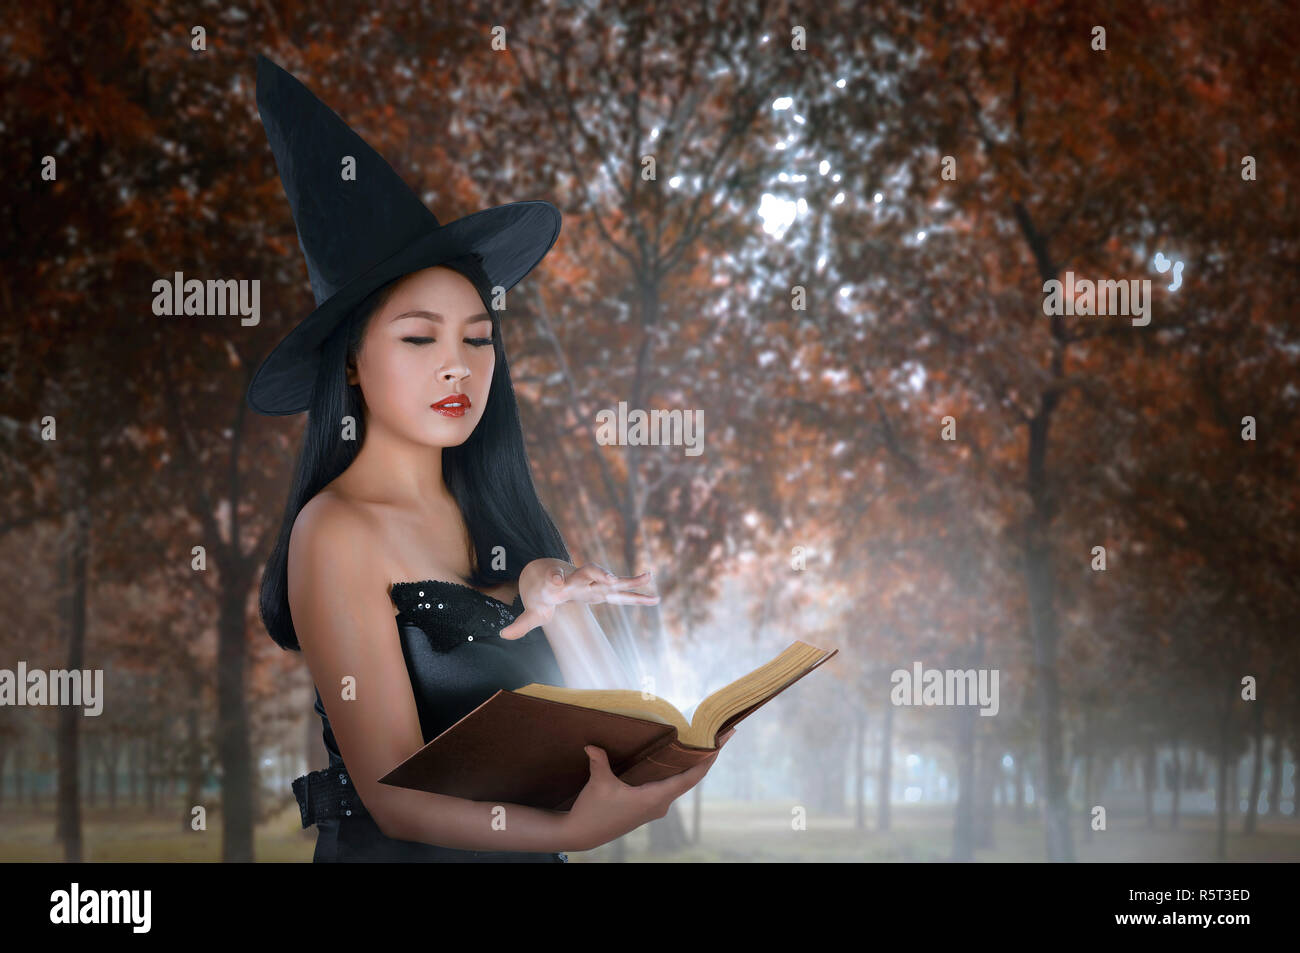 Young asian woman in witches costume holding spell book Stock Photo